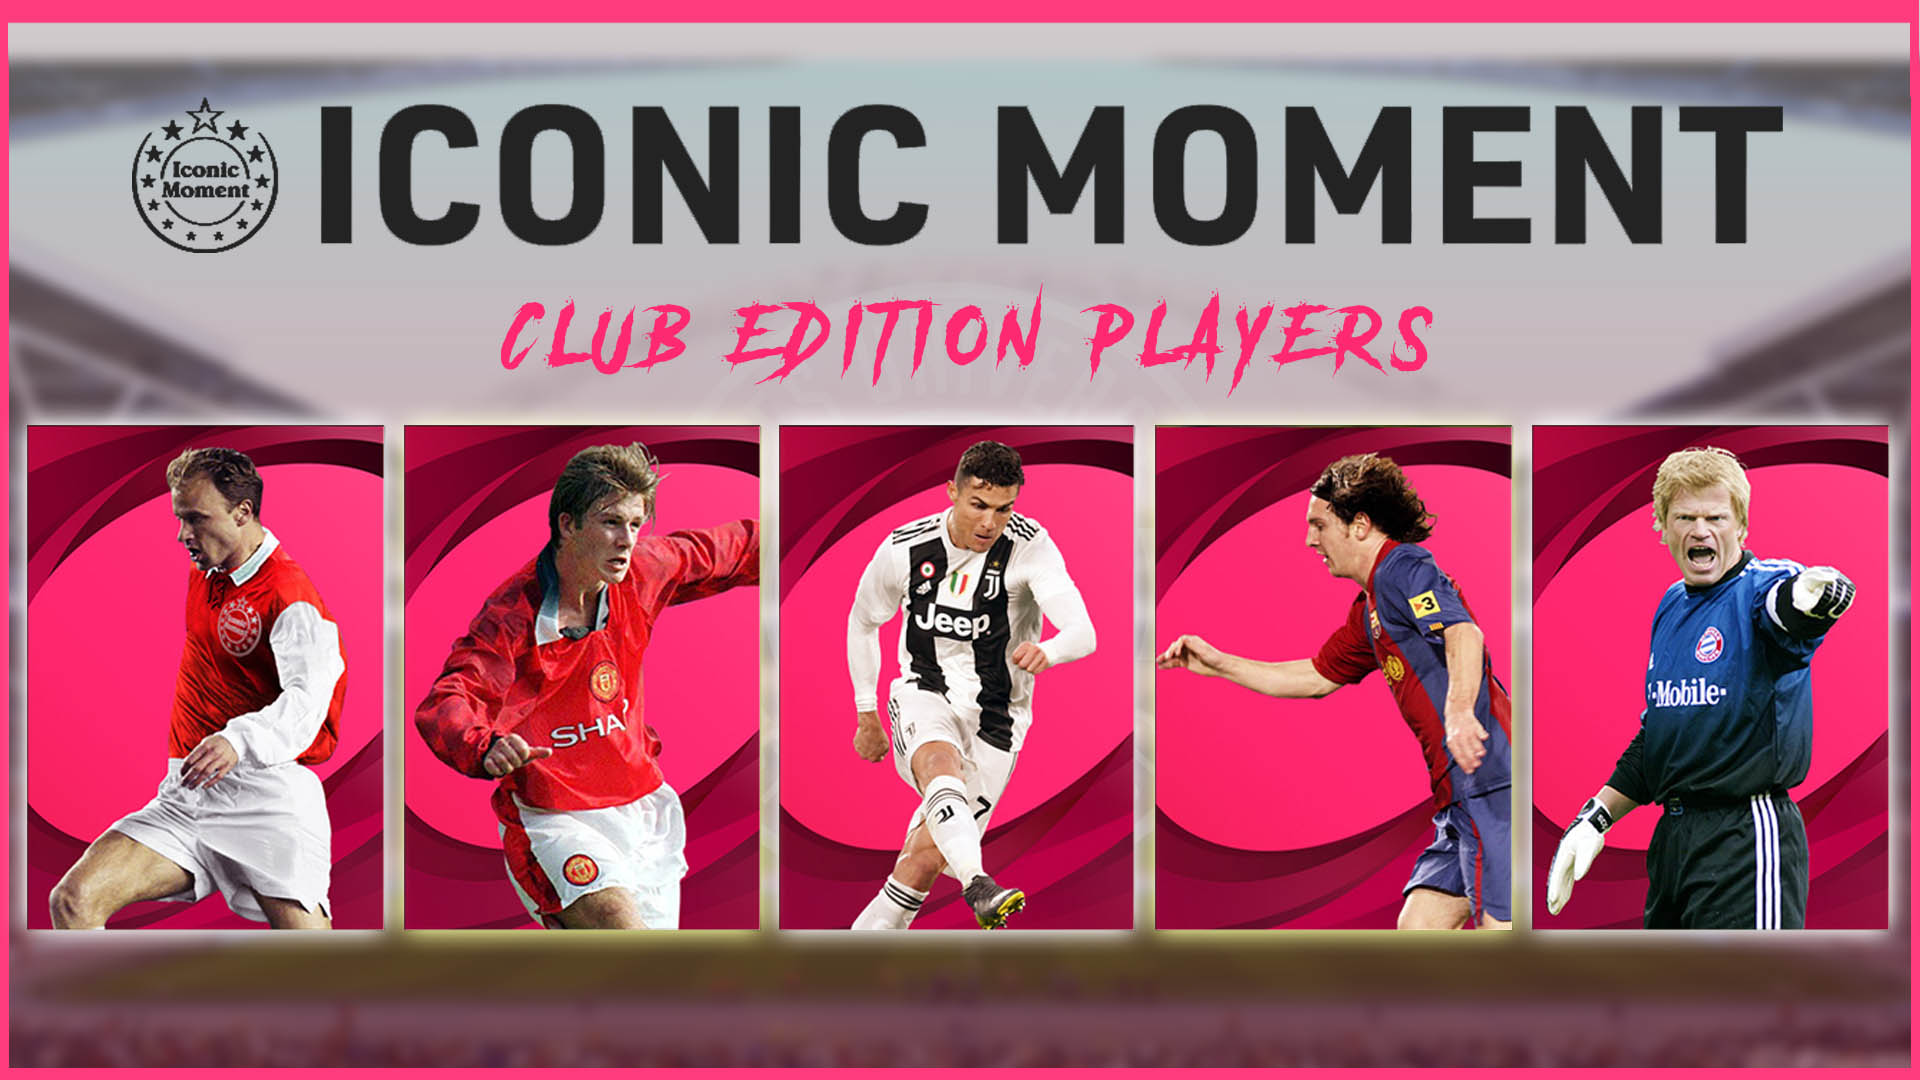 pes 2021 iconc moments players club